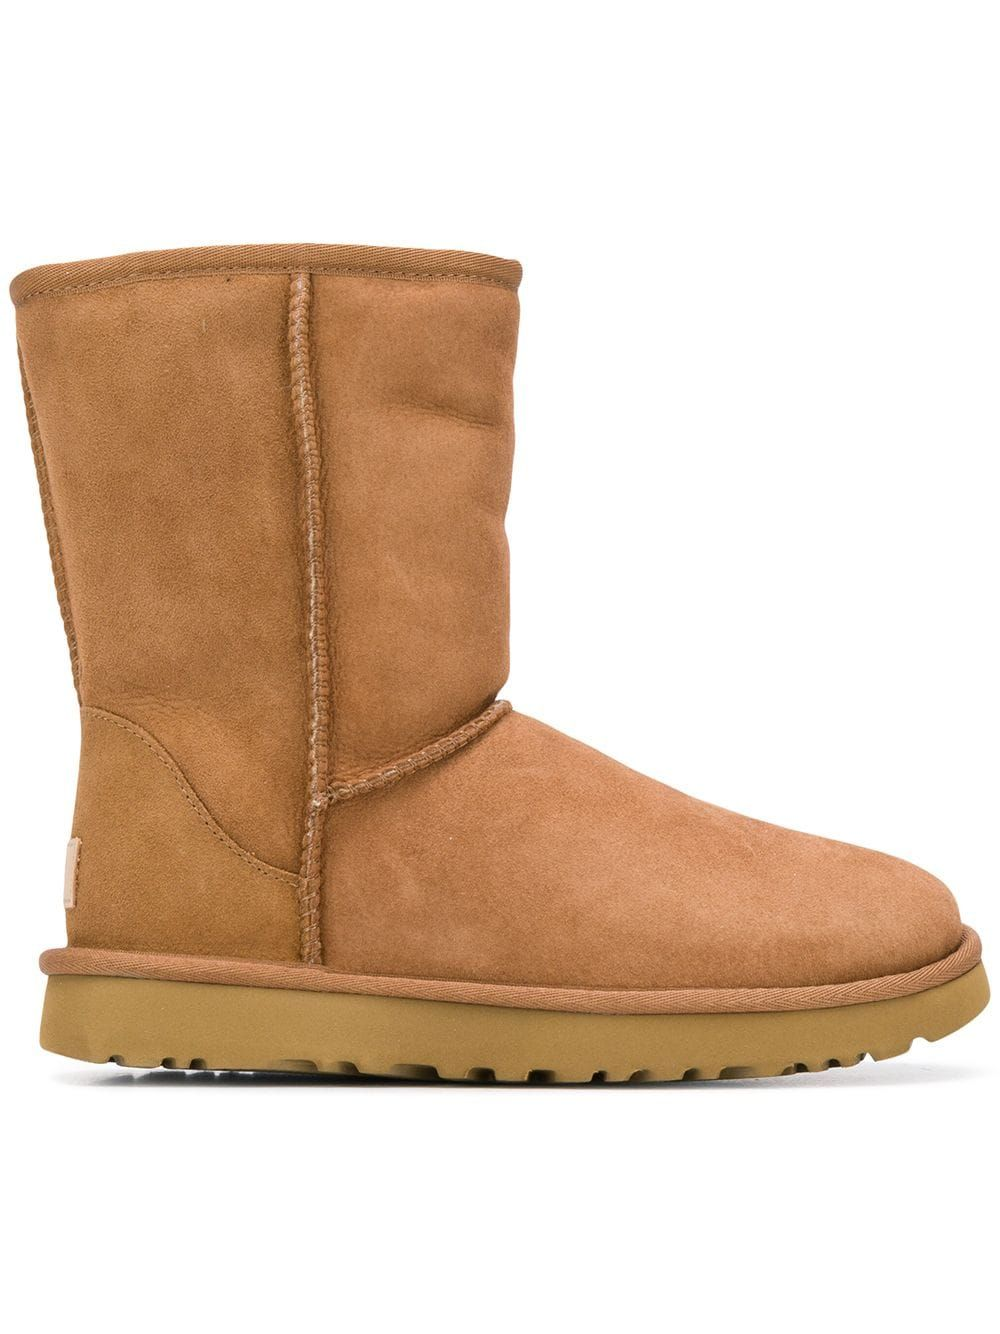 ugg sale how to get 30 off ugg boots now